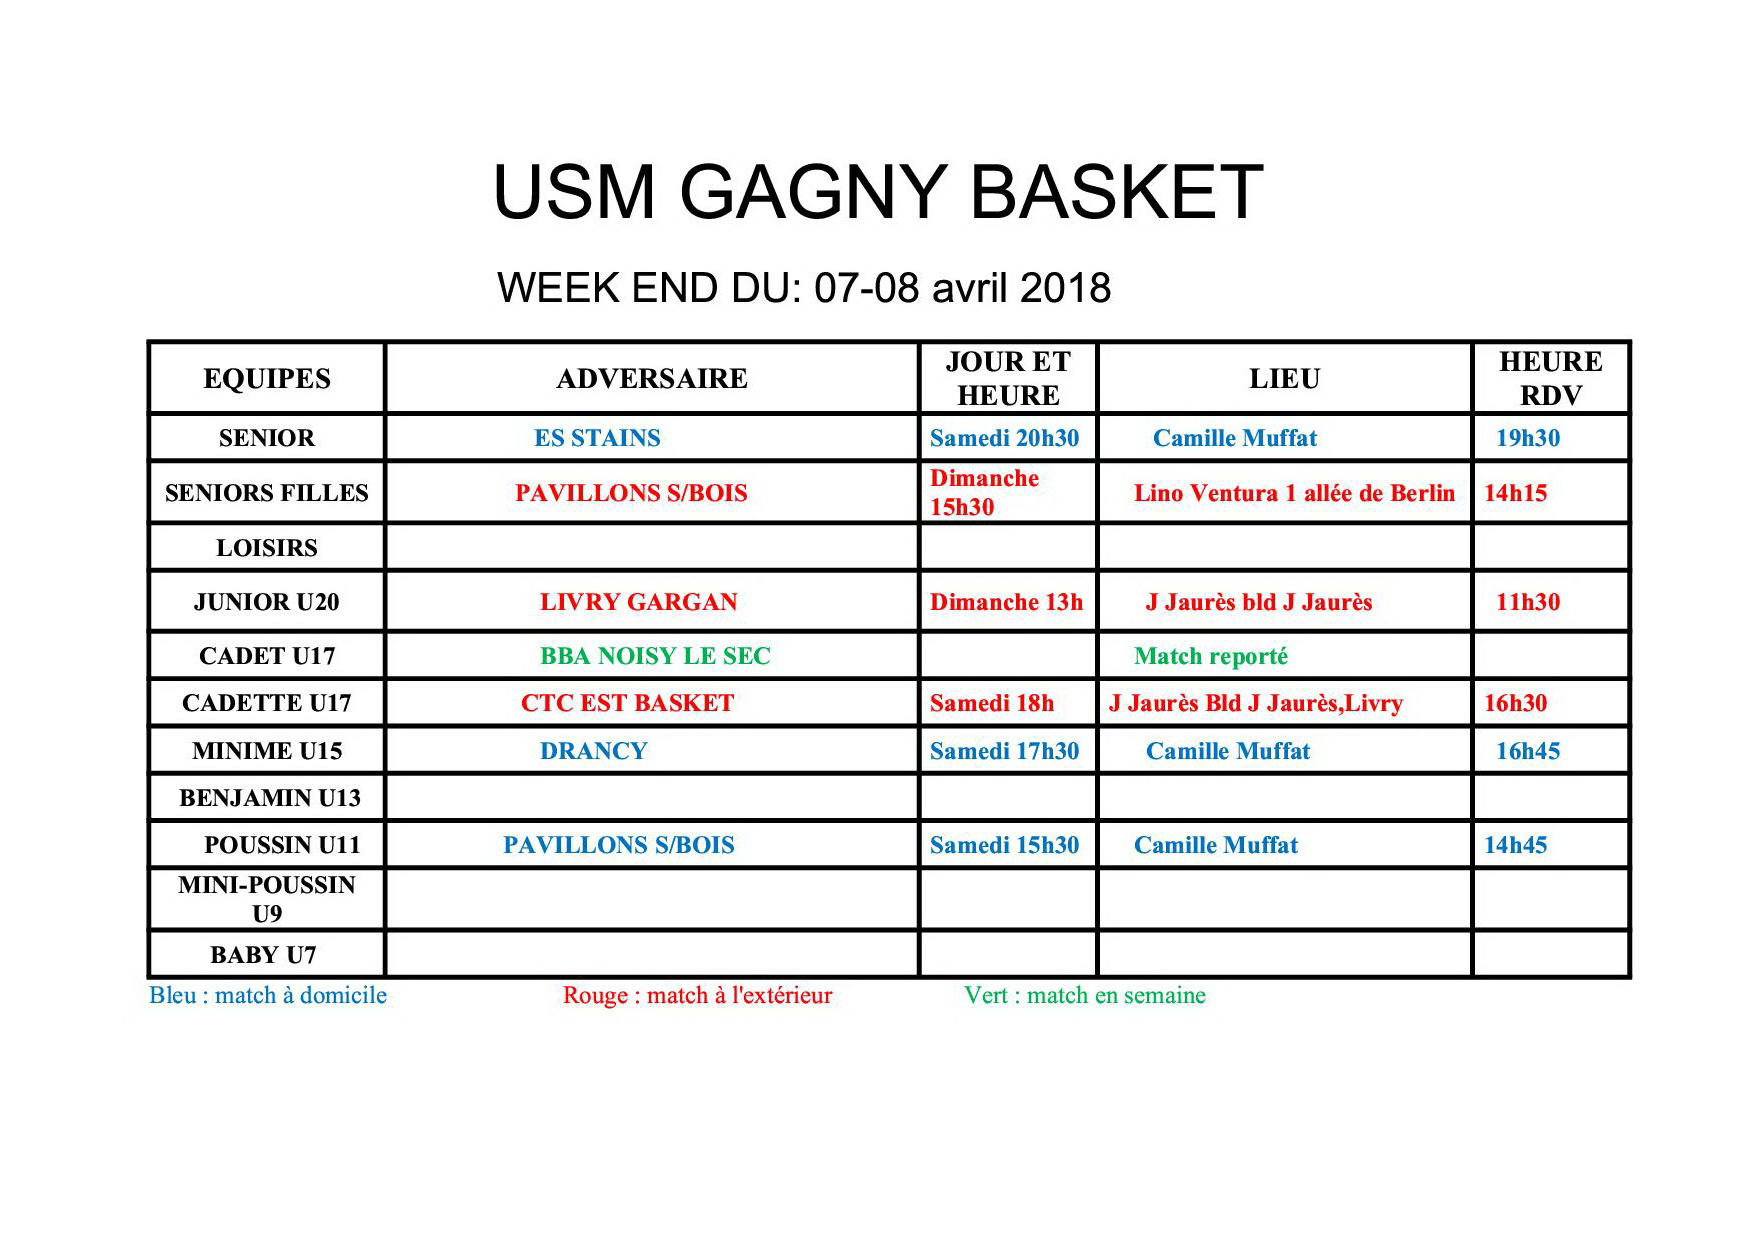 Usmg gagny planning week end 7 8 avril 2018